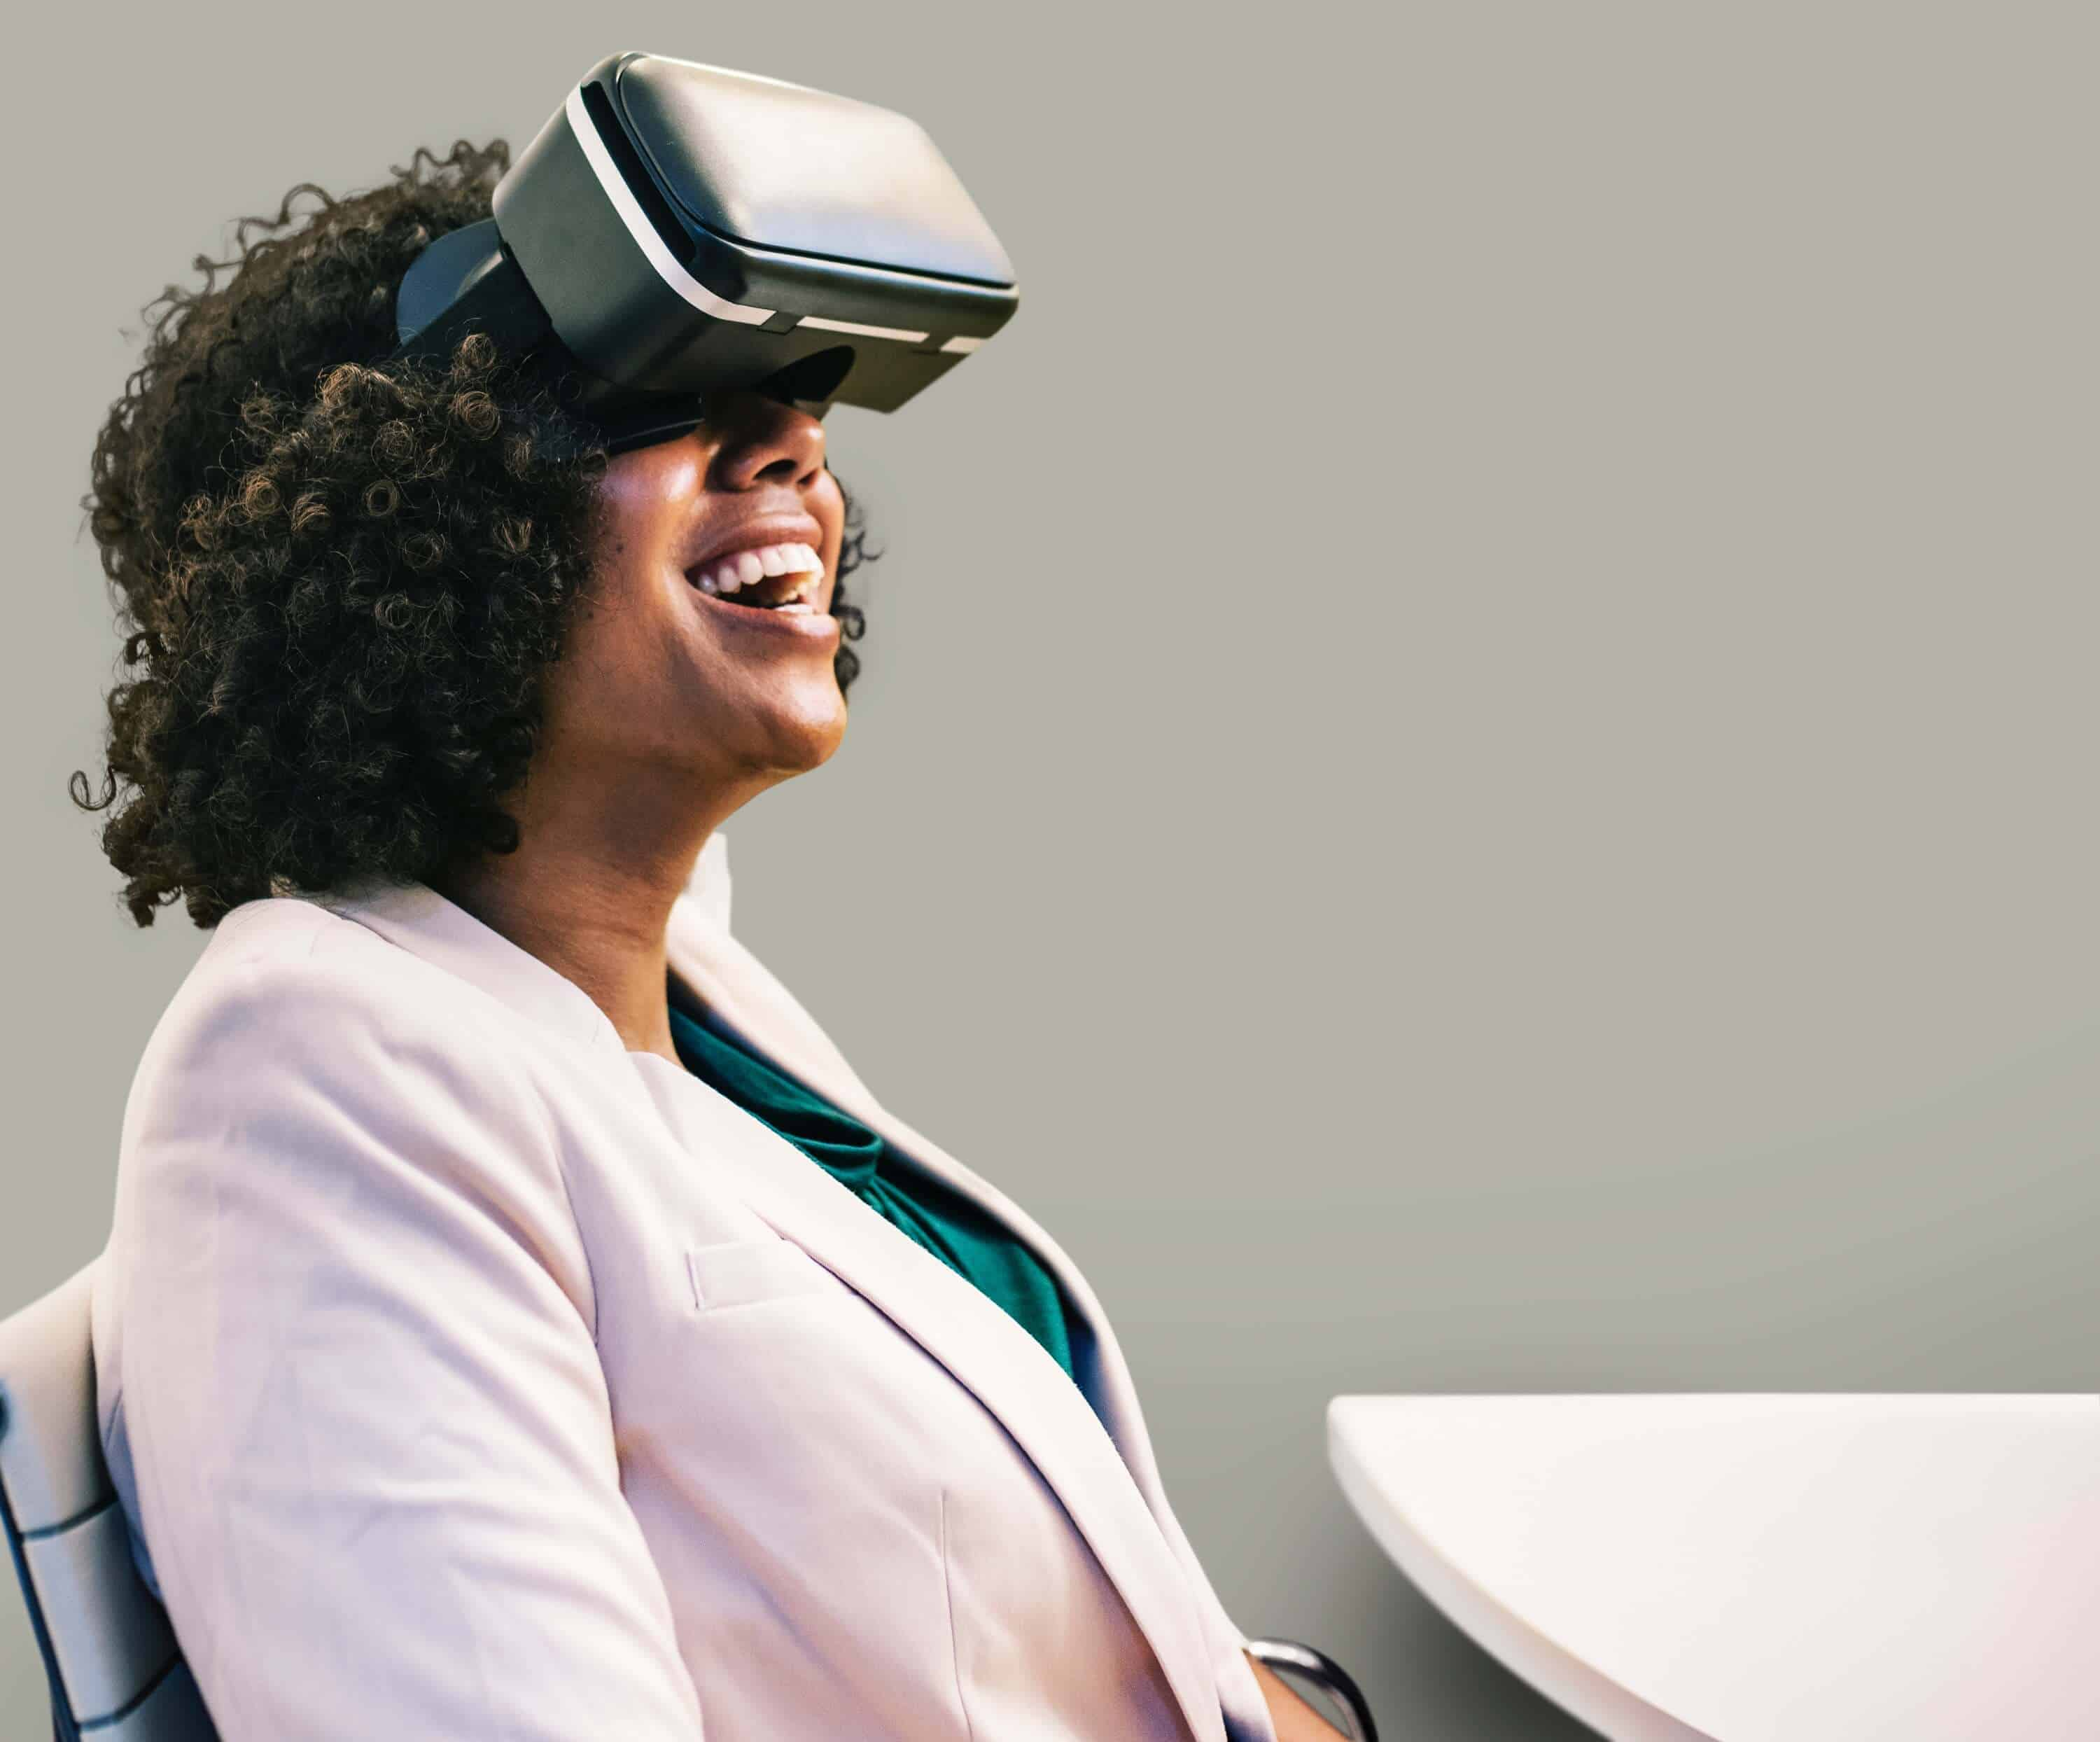 women with virtual reality machine